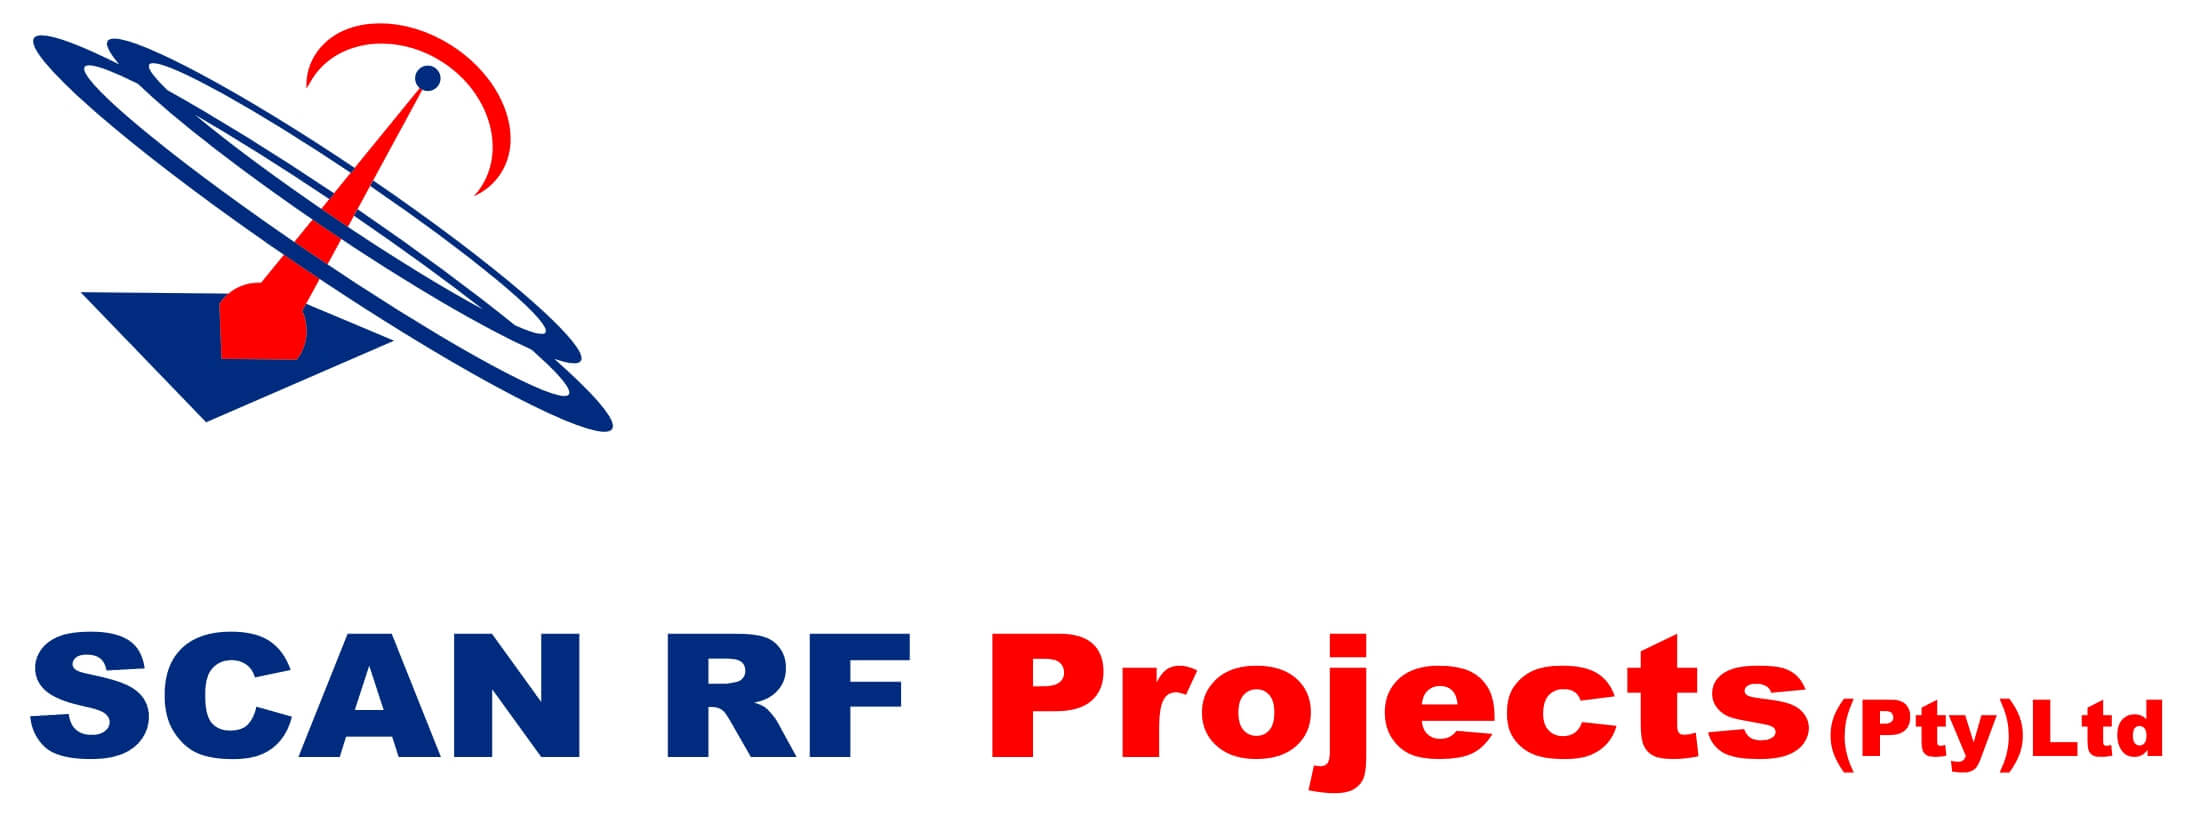 Scan RF Projects